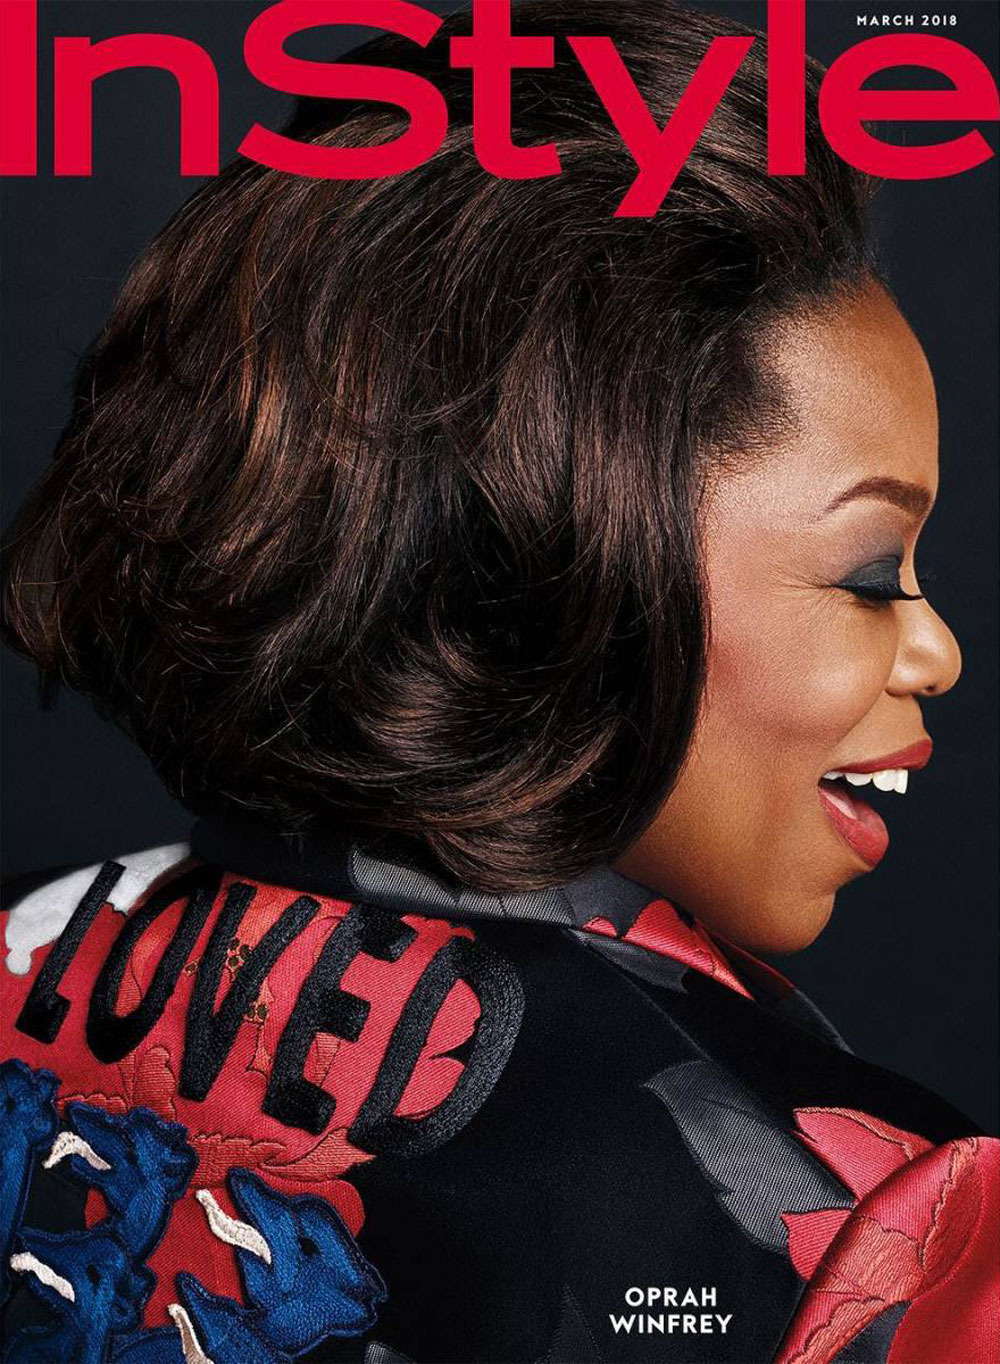 Colored Christmas Karla Winfrey With Oprah Covers InStyle Magazine In Versace